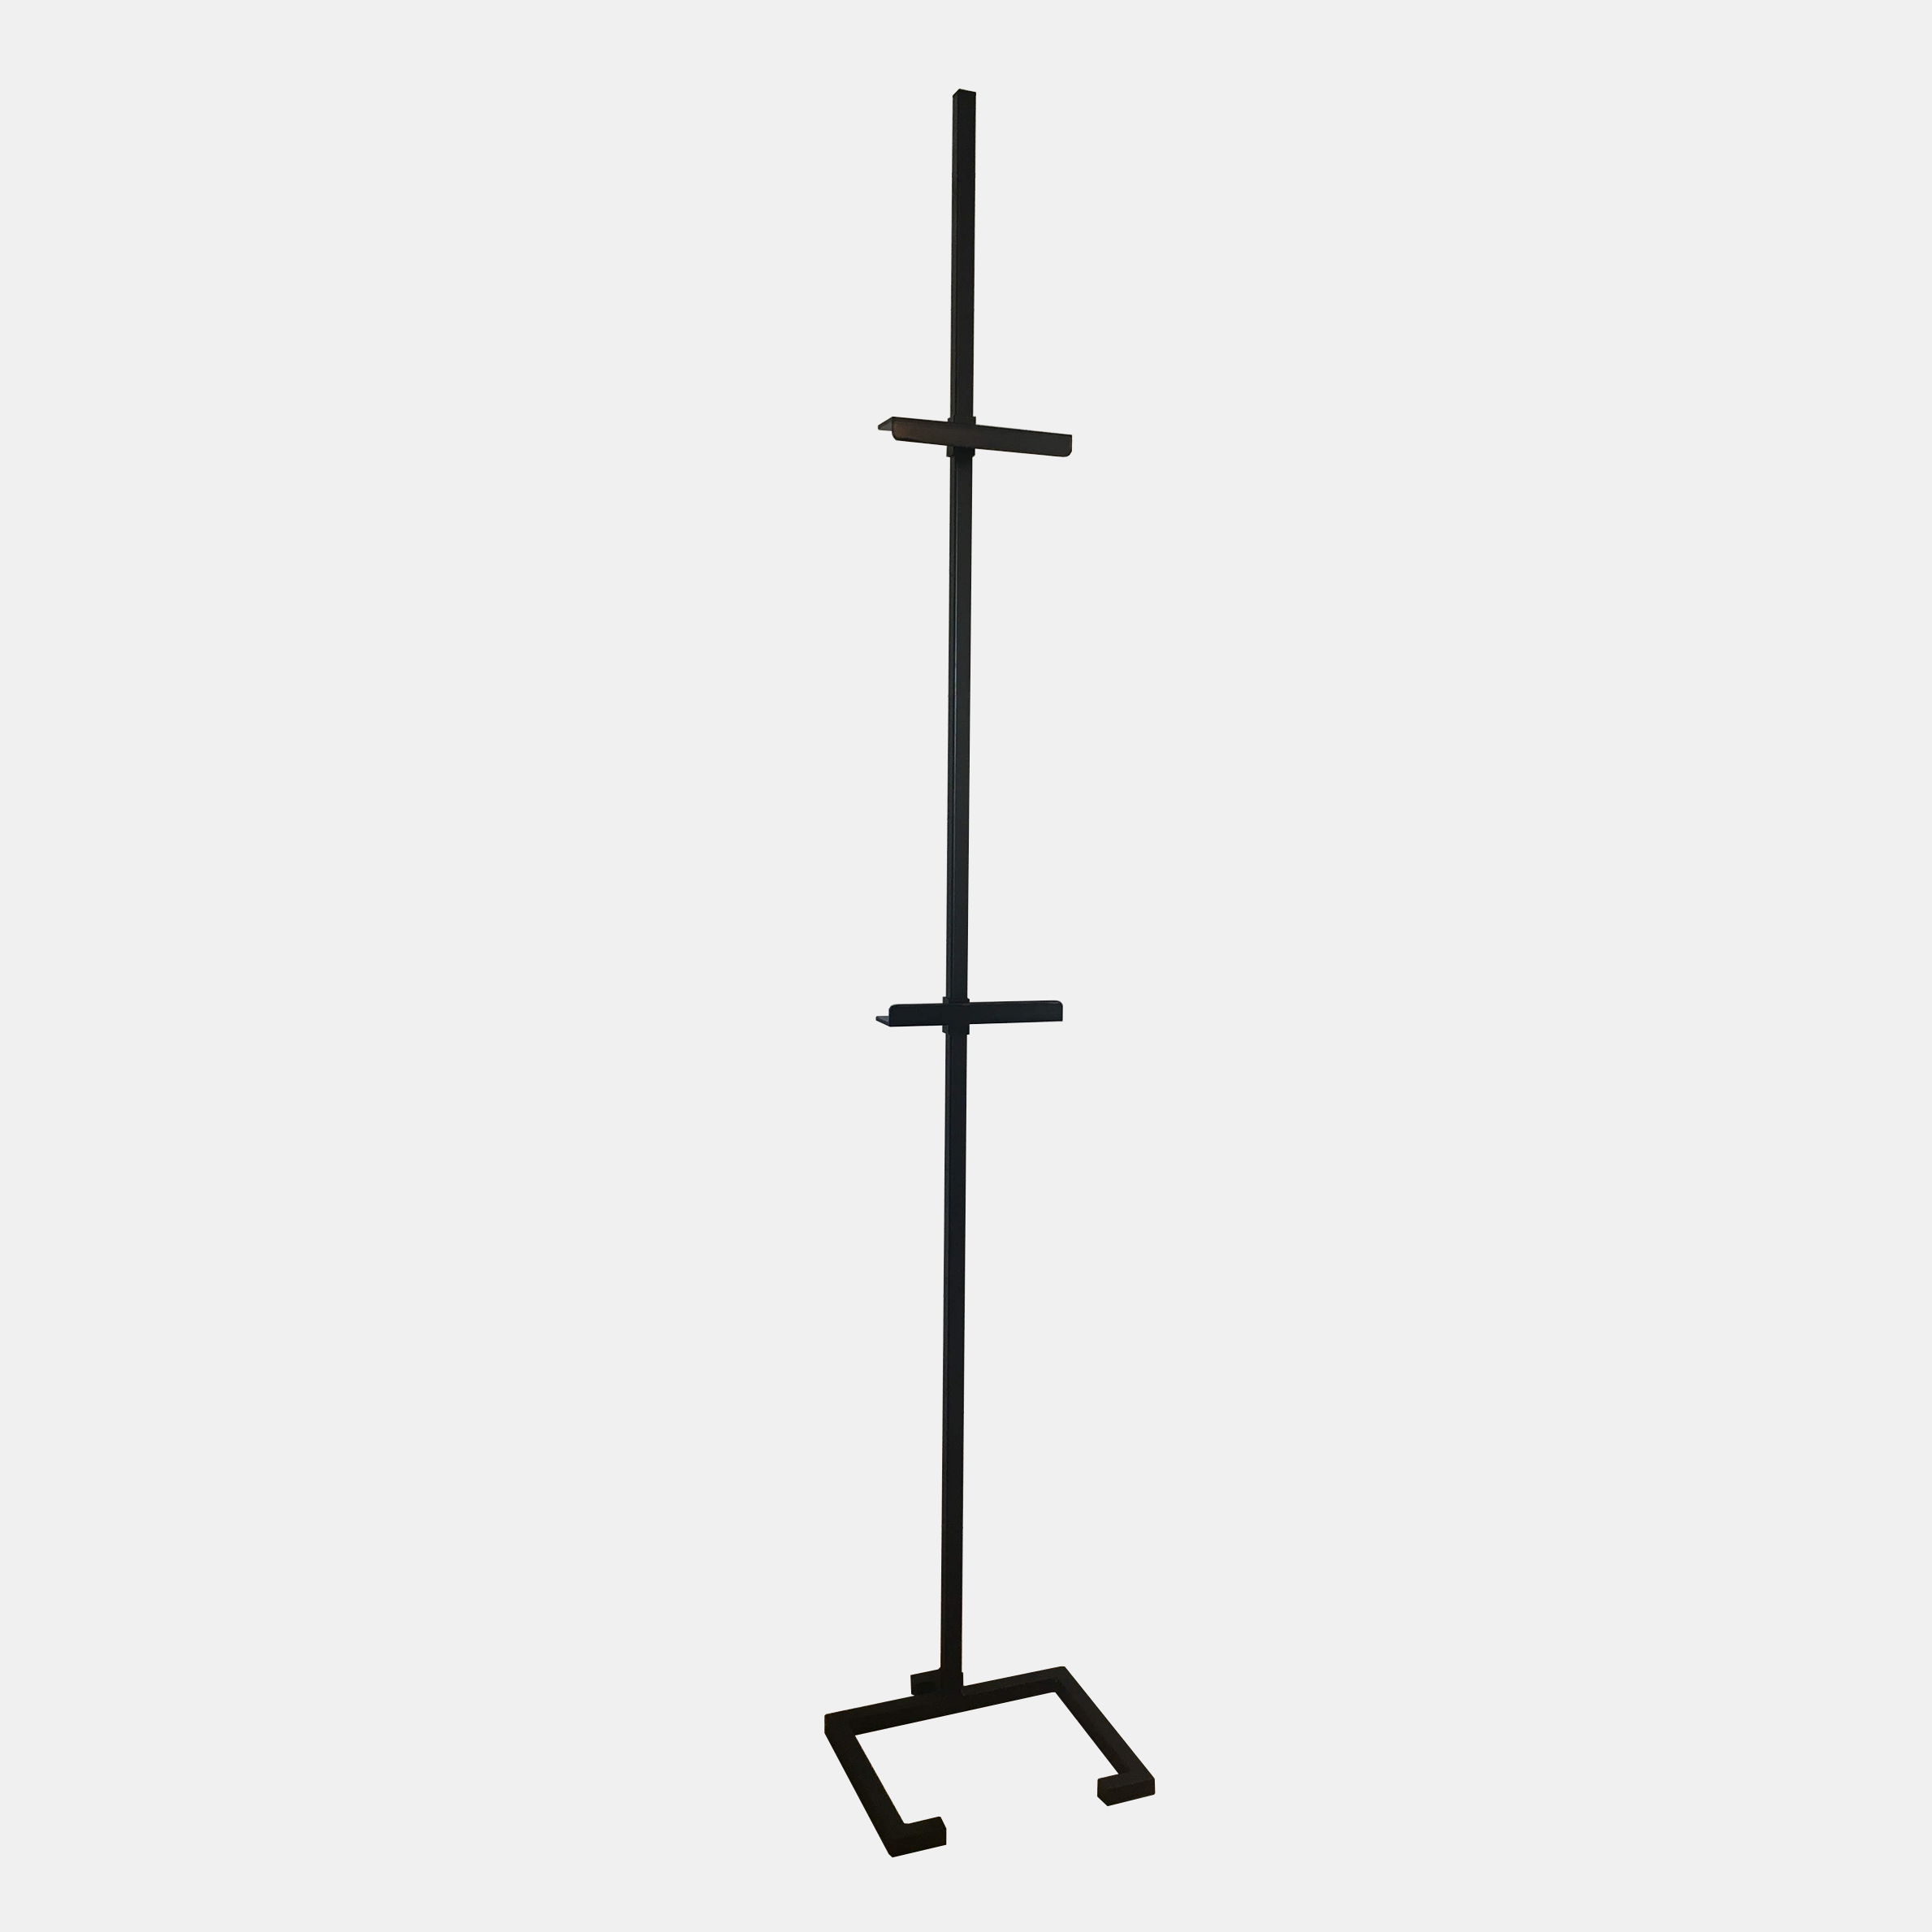 "Large Steel Easel  Black powder-coated steel base with hollow-core post and adjustable brackets. Custom made in Atlanta, GA. Large: 90"" high, 15""x14.5"" base. All brackets 2.5"" deep. Additional brackets available for use with two pieces of art. SKU0958FMW"